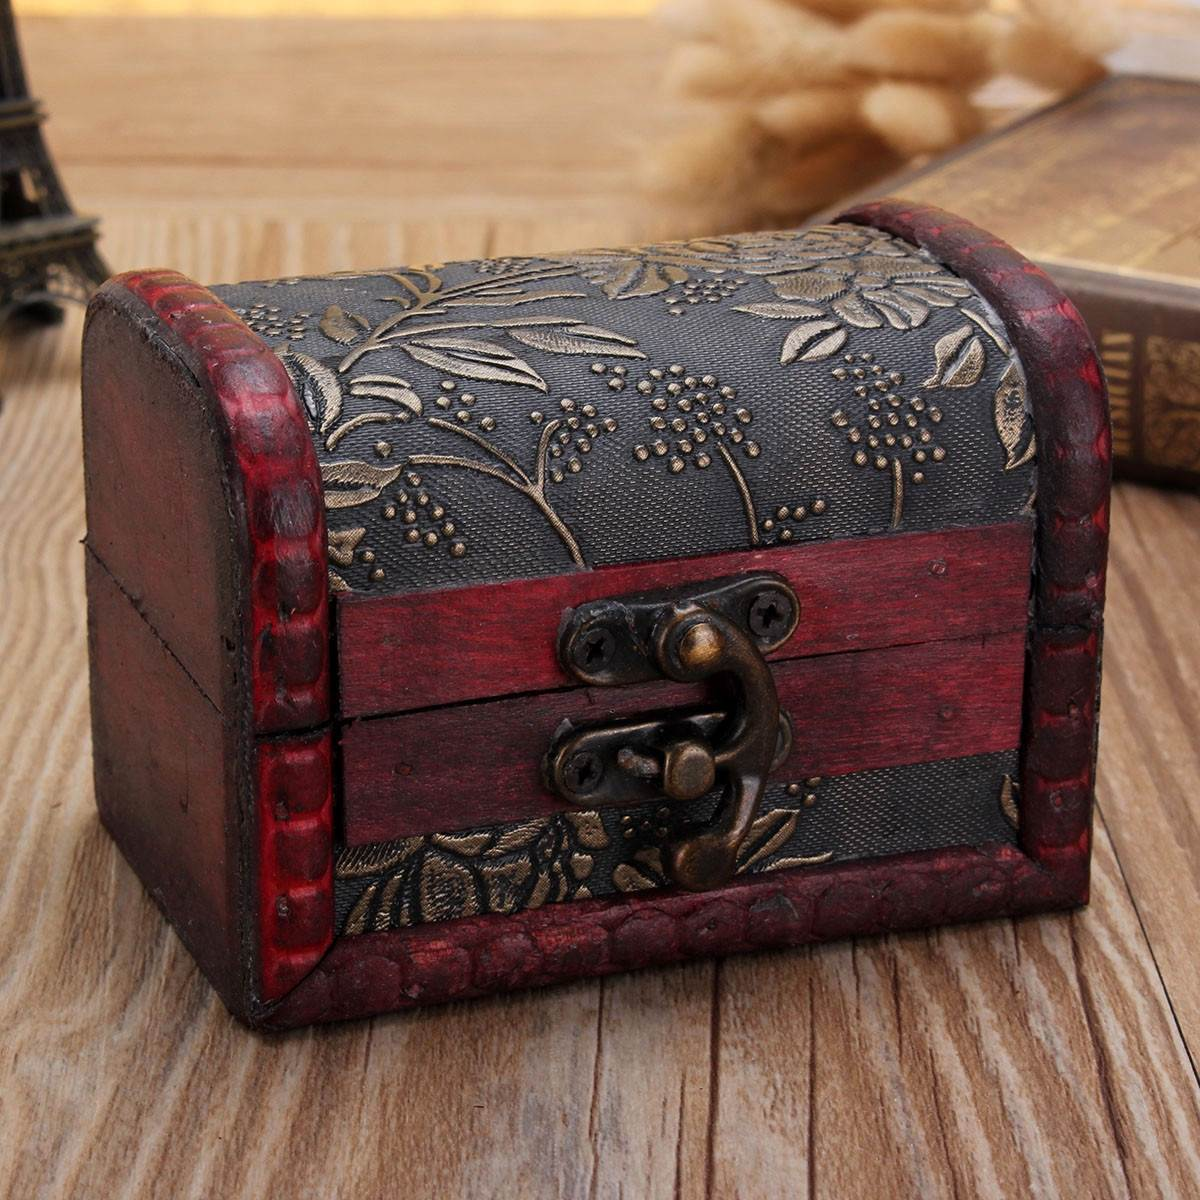 vintage small decor wooden box with lock jewelry bracelet holder desktop storage boxes case organizer candy - Decorative Boxes